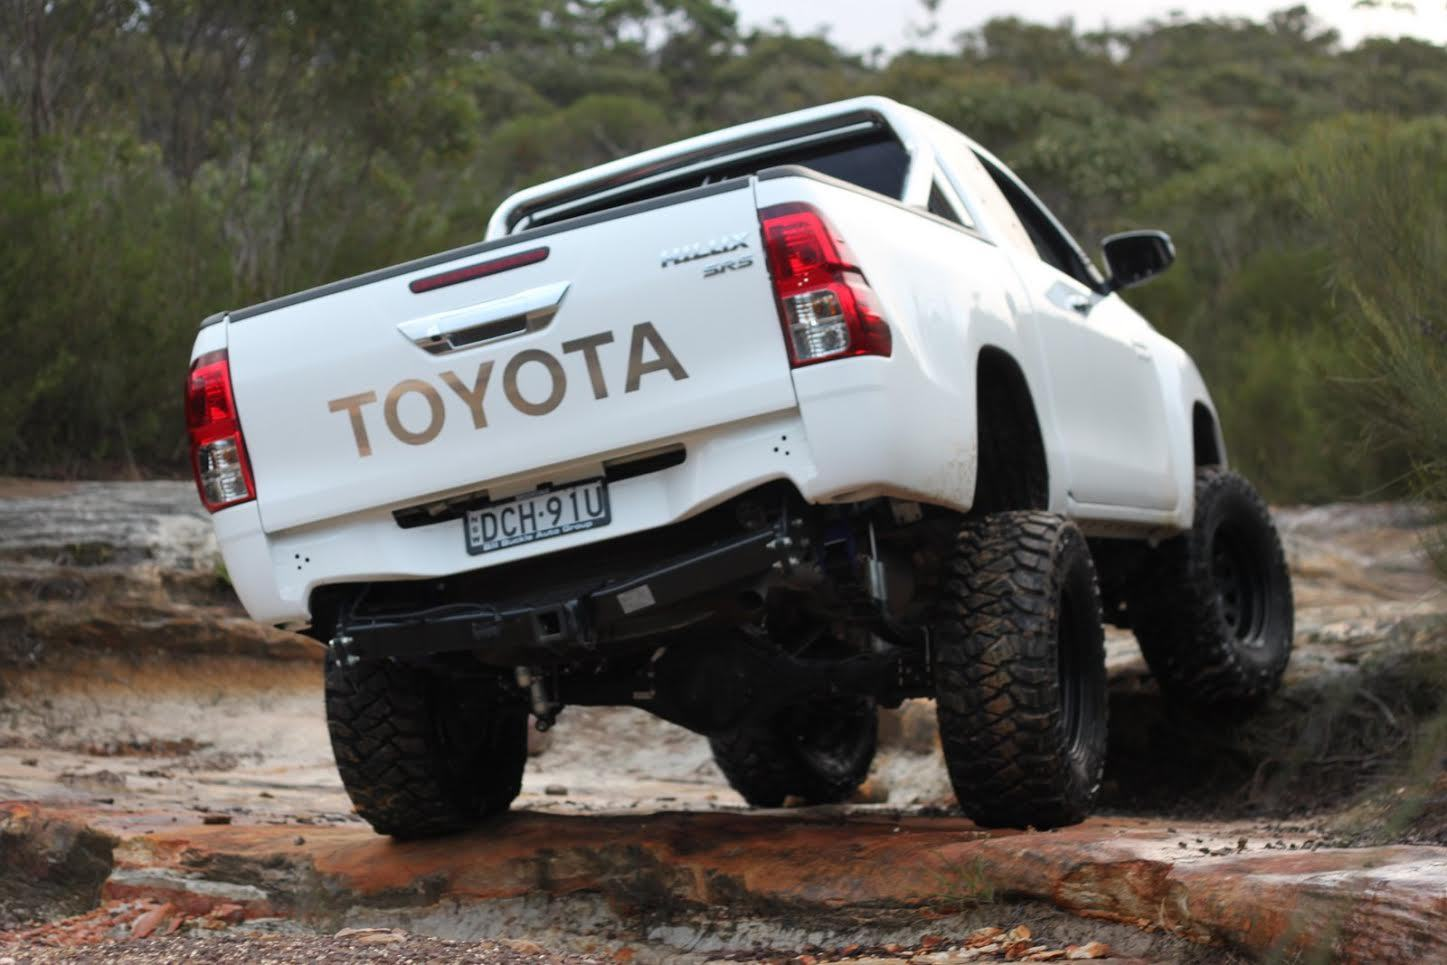 VMN's suit styleside can lift your vehicle higher than the standard body lift.